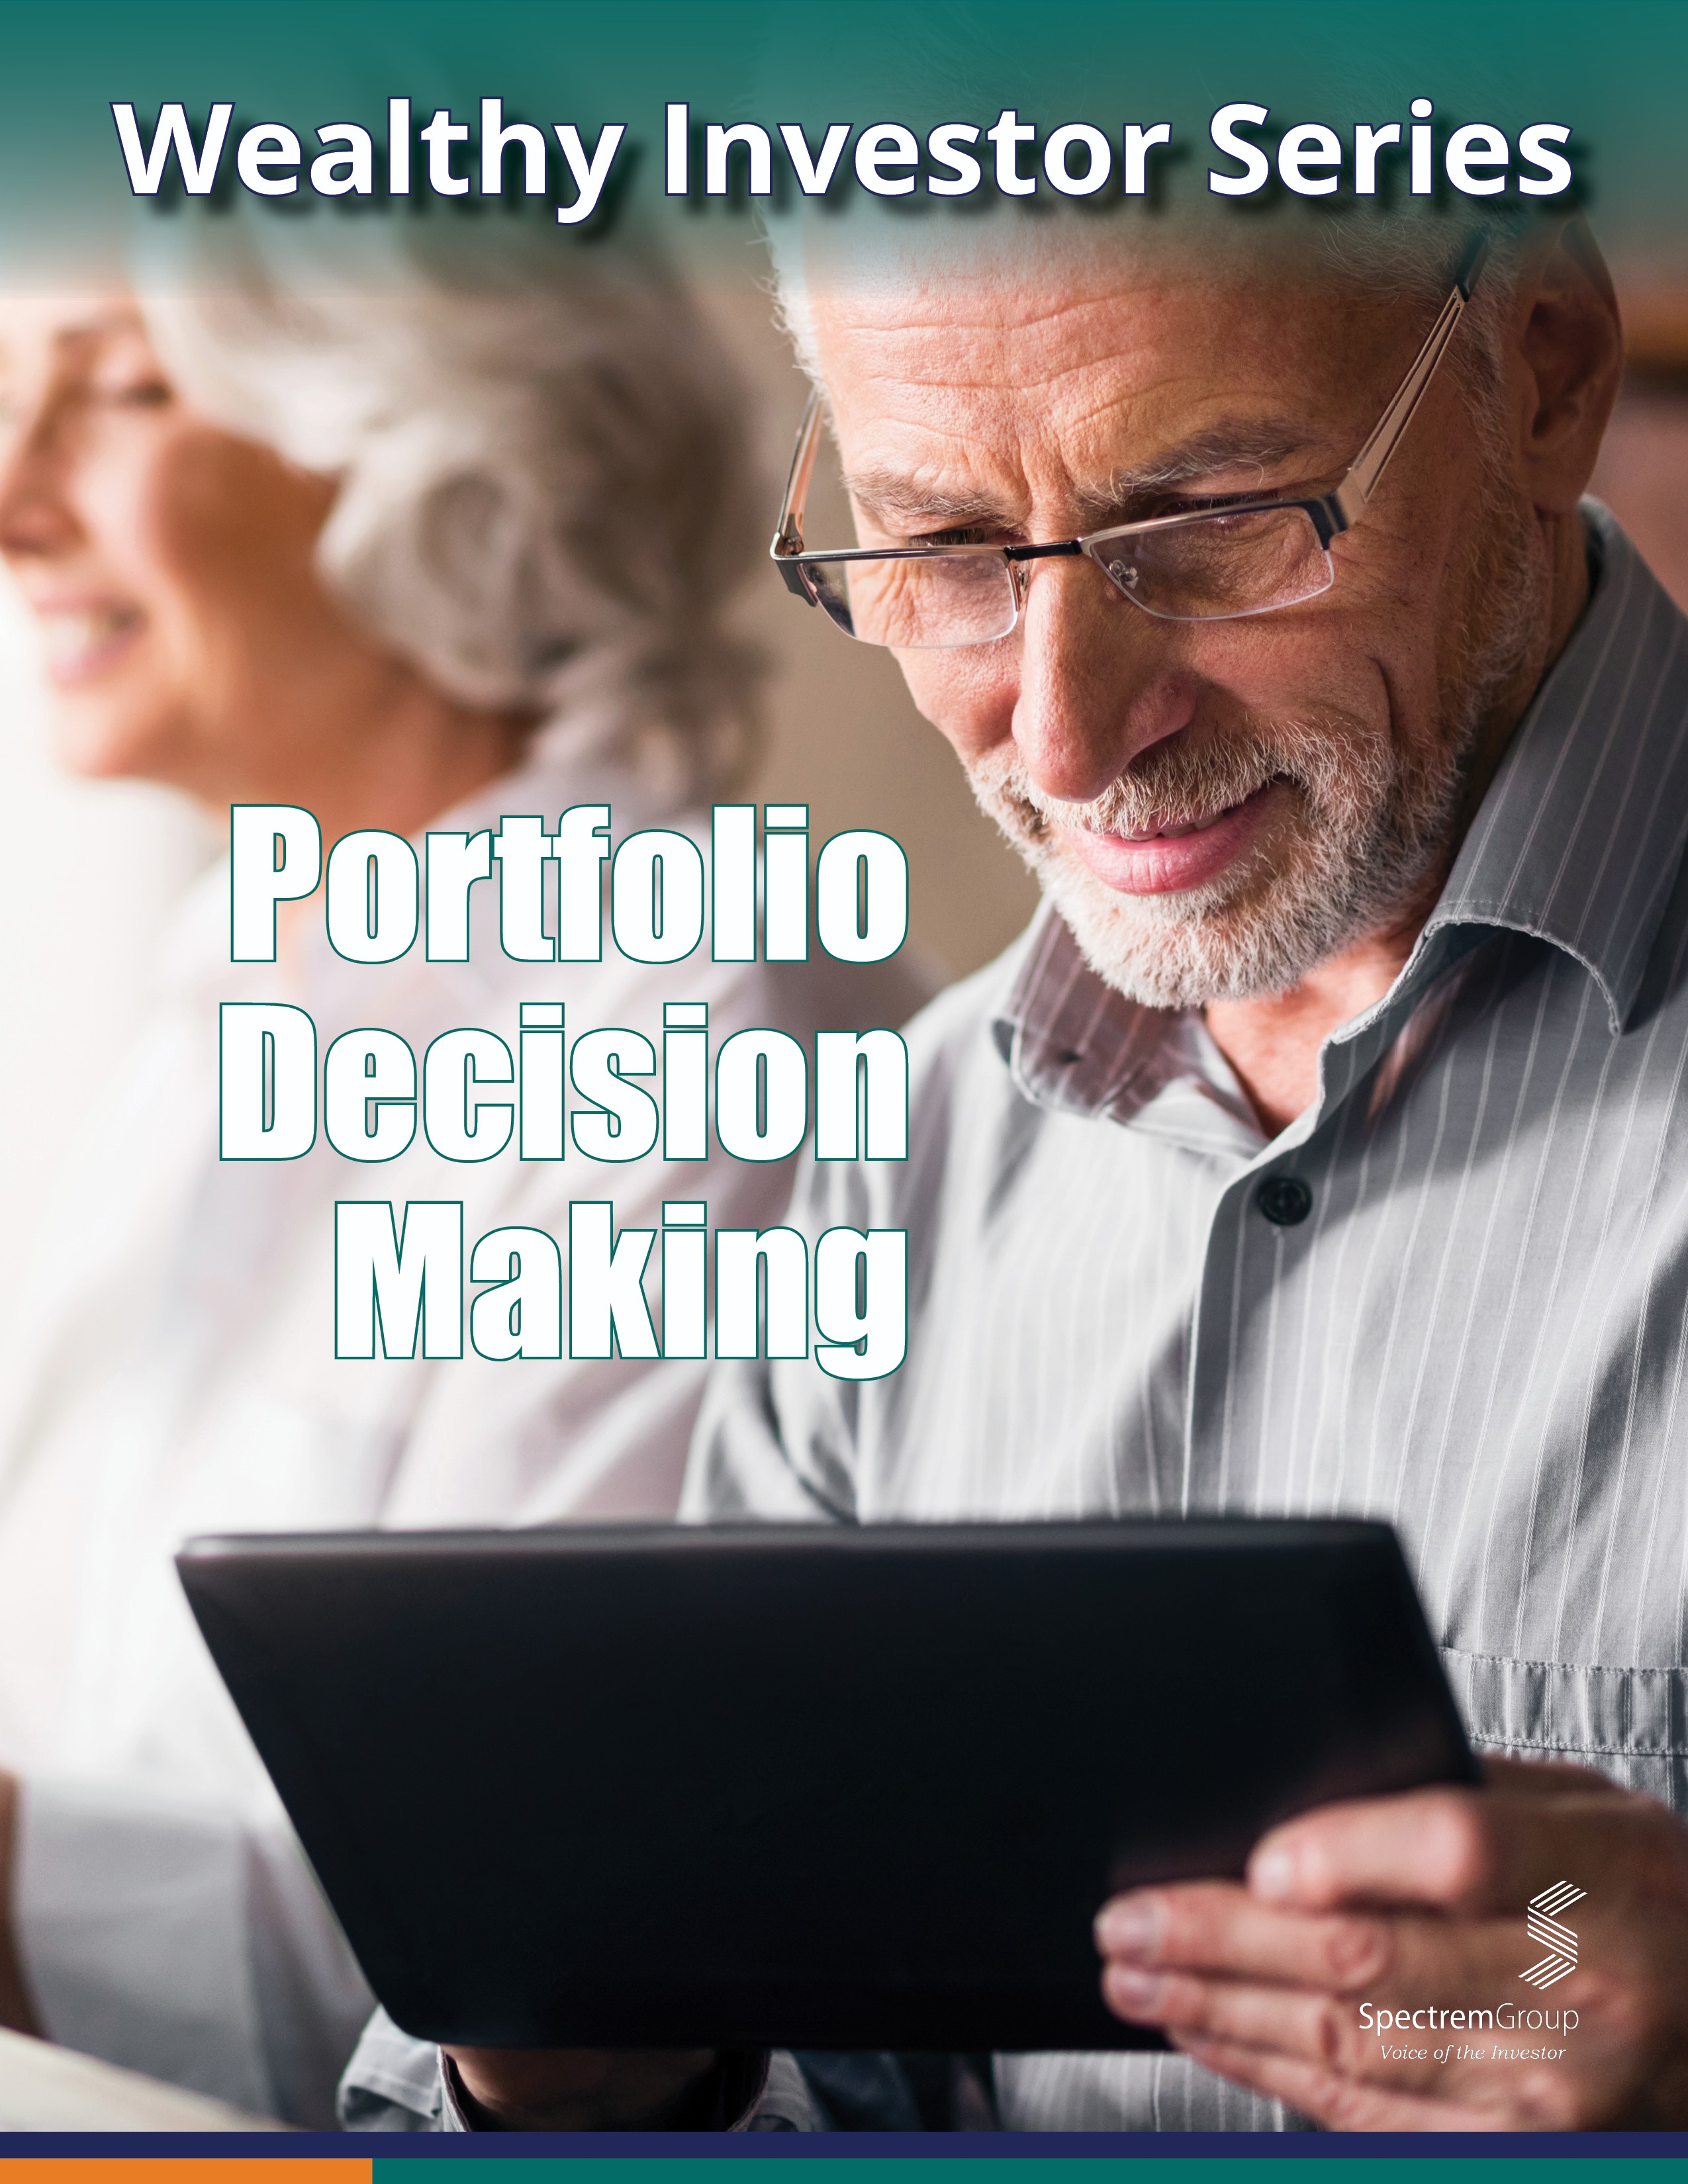 Wealthy Investor Series: Portfolio Decision Making